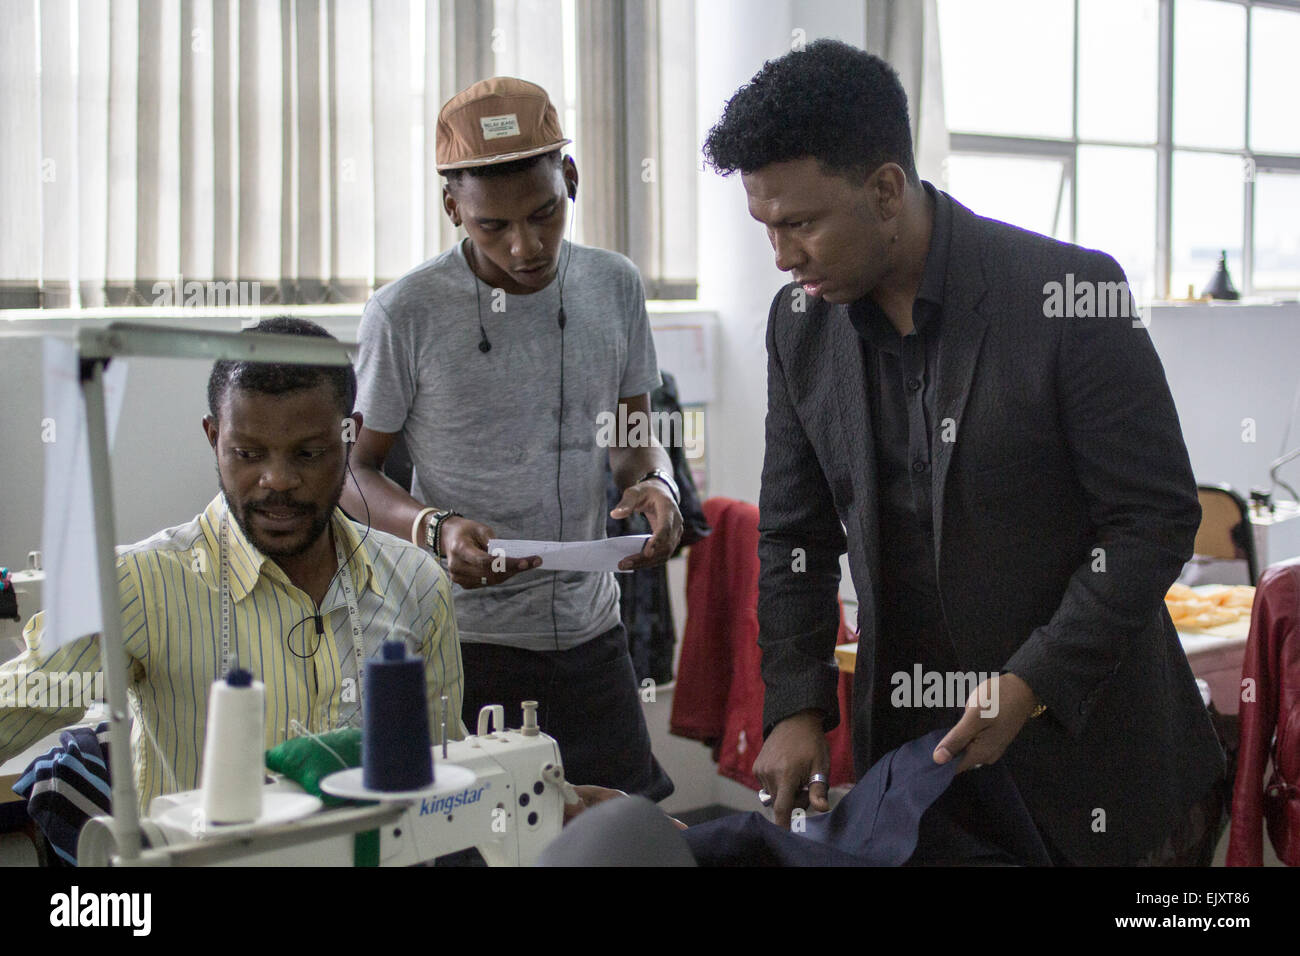 South African Fashion Designer David Tlale R Talking To One Of His Stock Photo Alamy